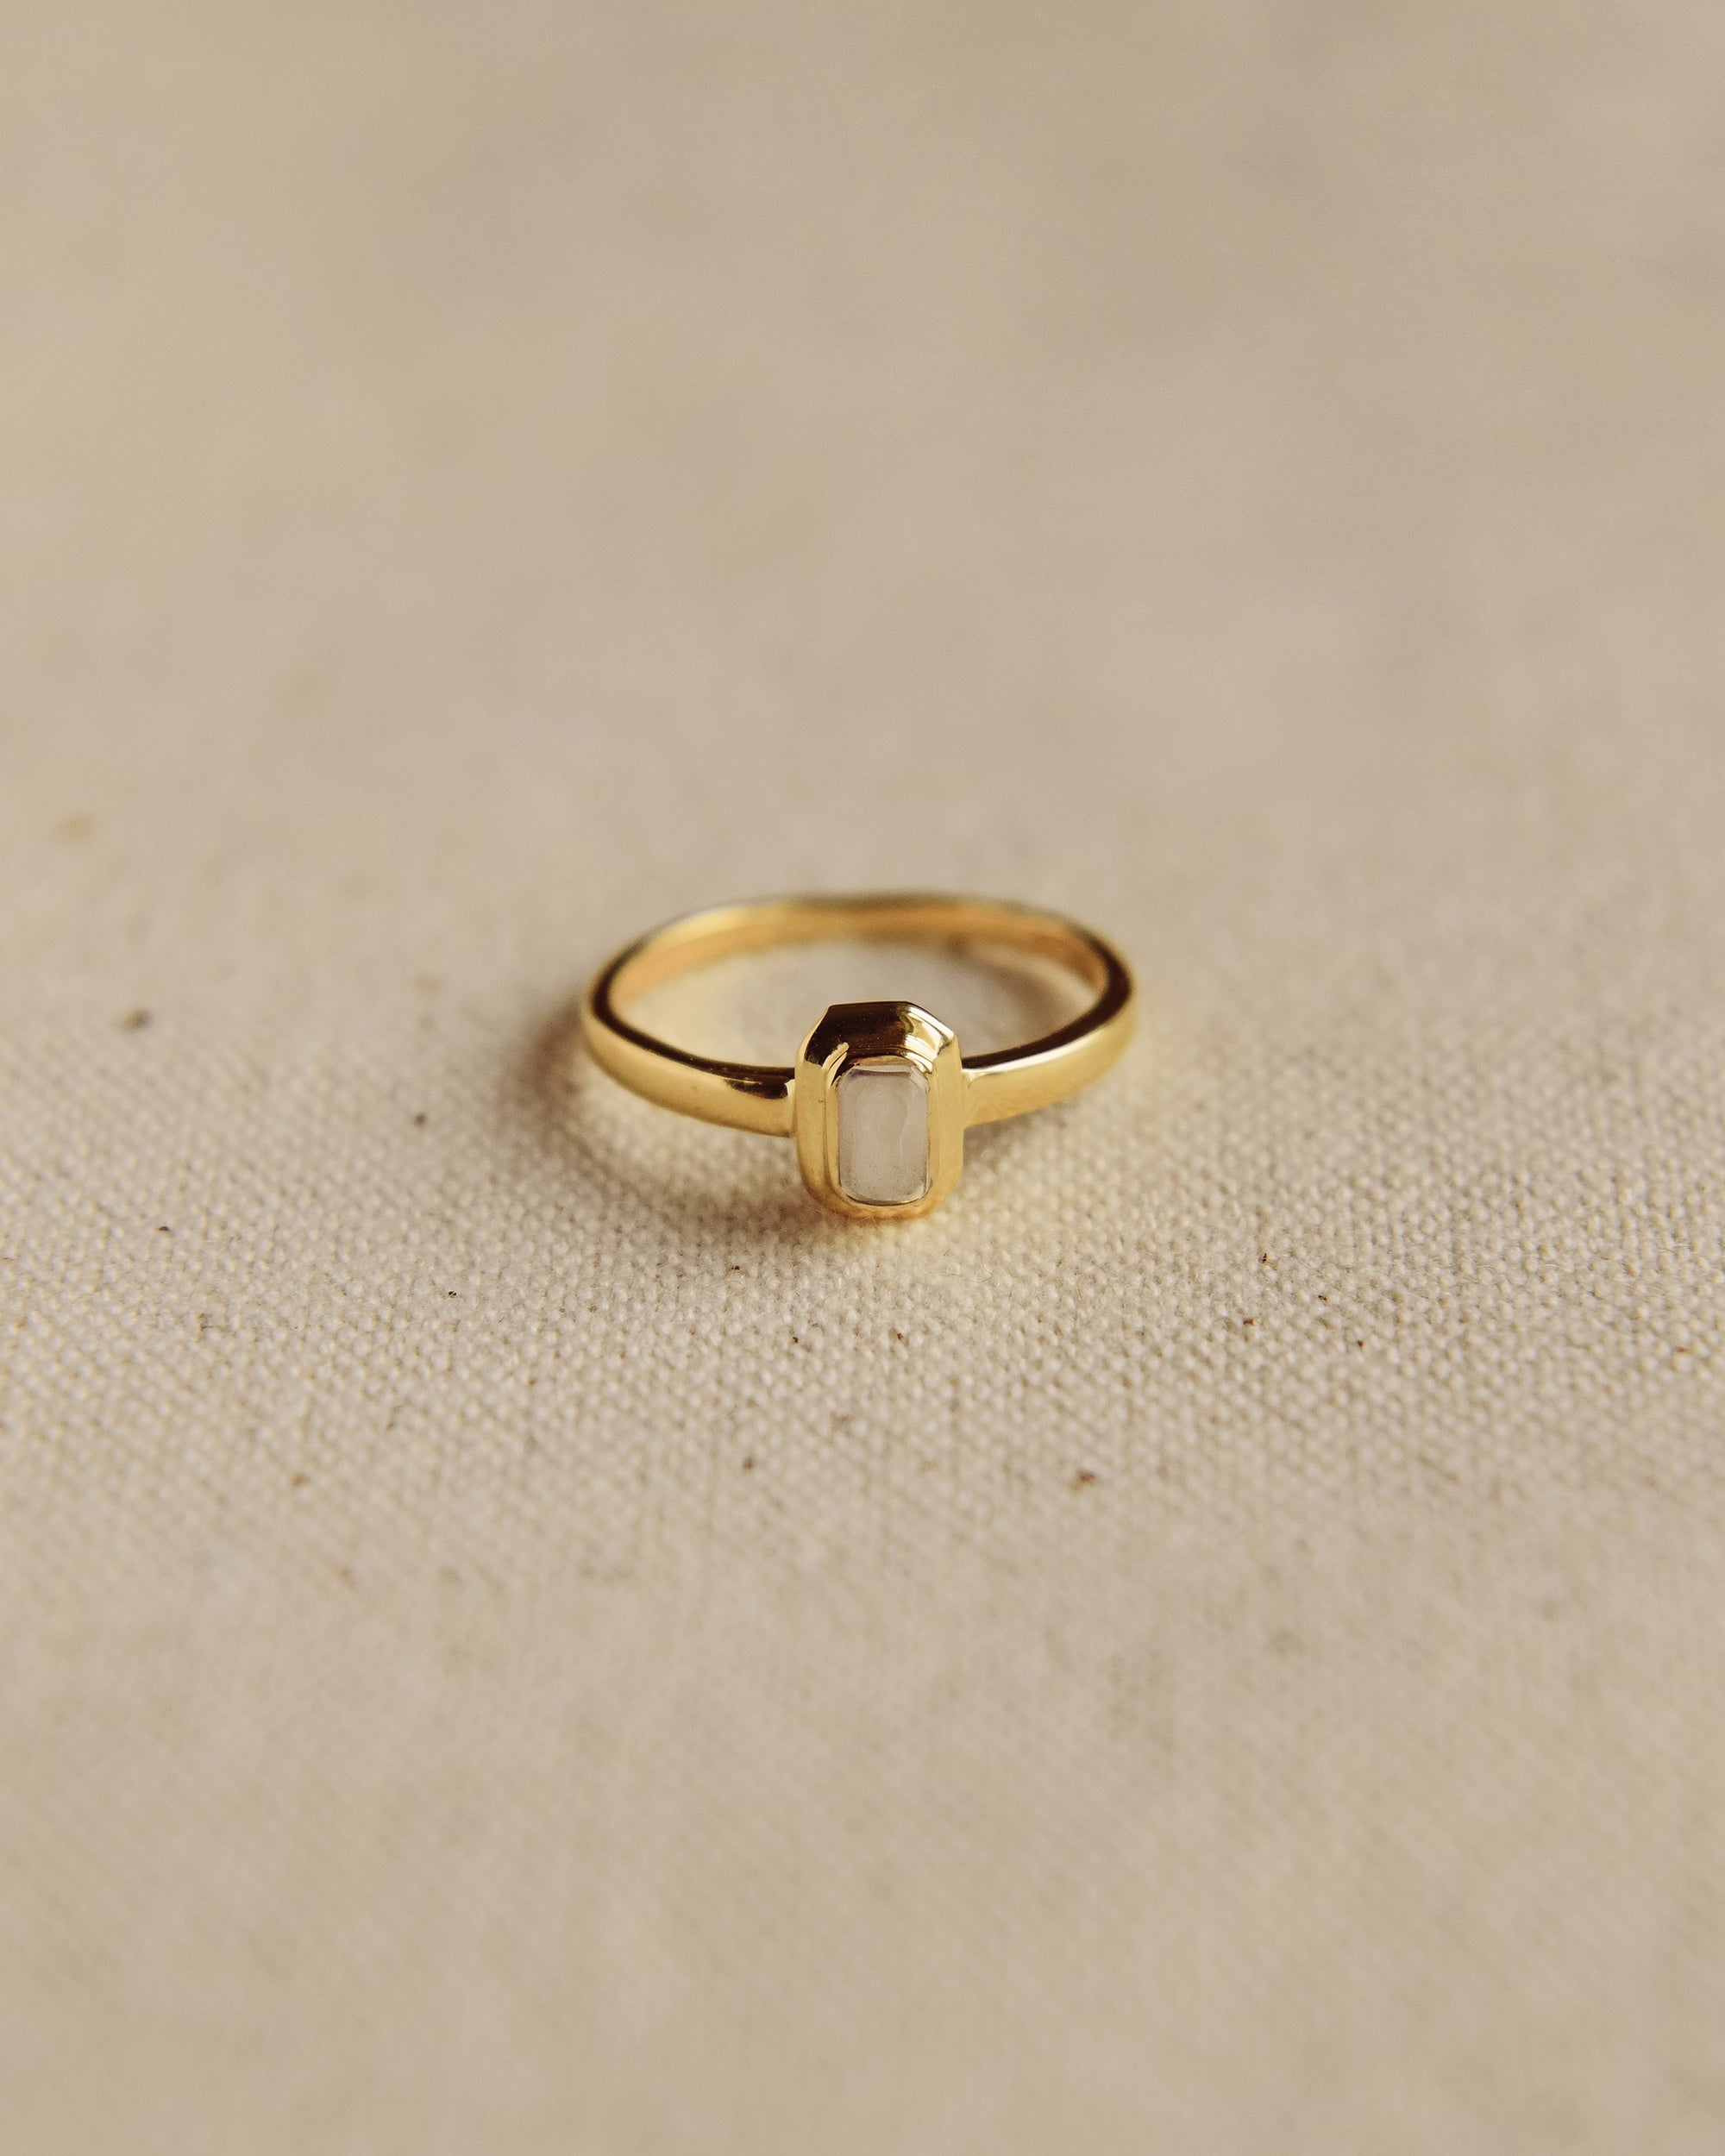 Image of Frances Gold Vermeil Birthstone Ring - April